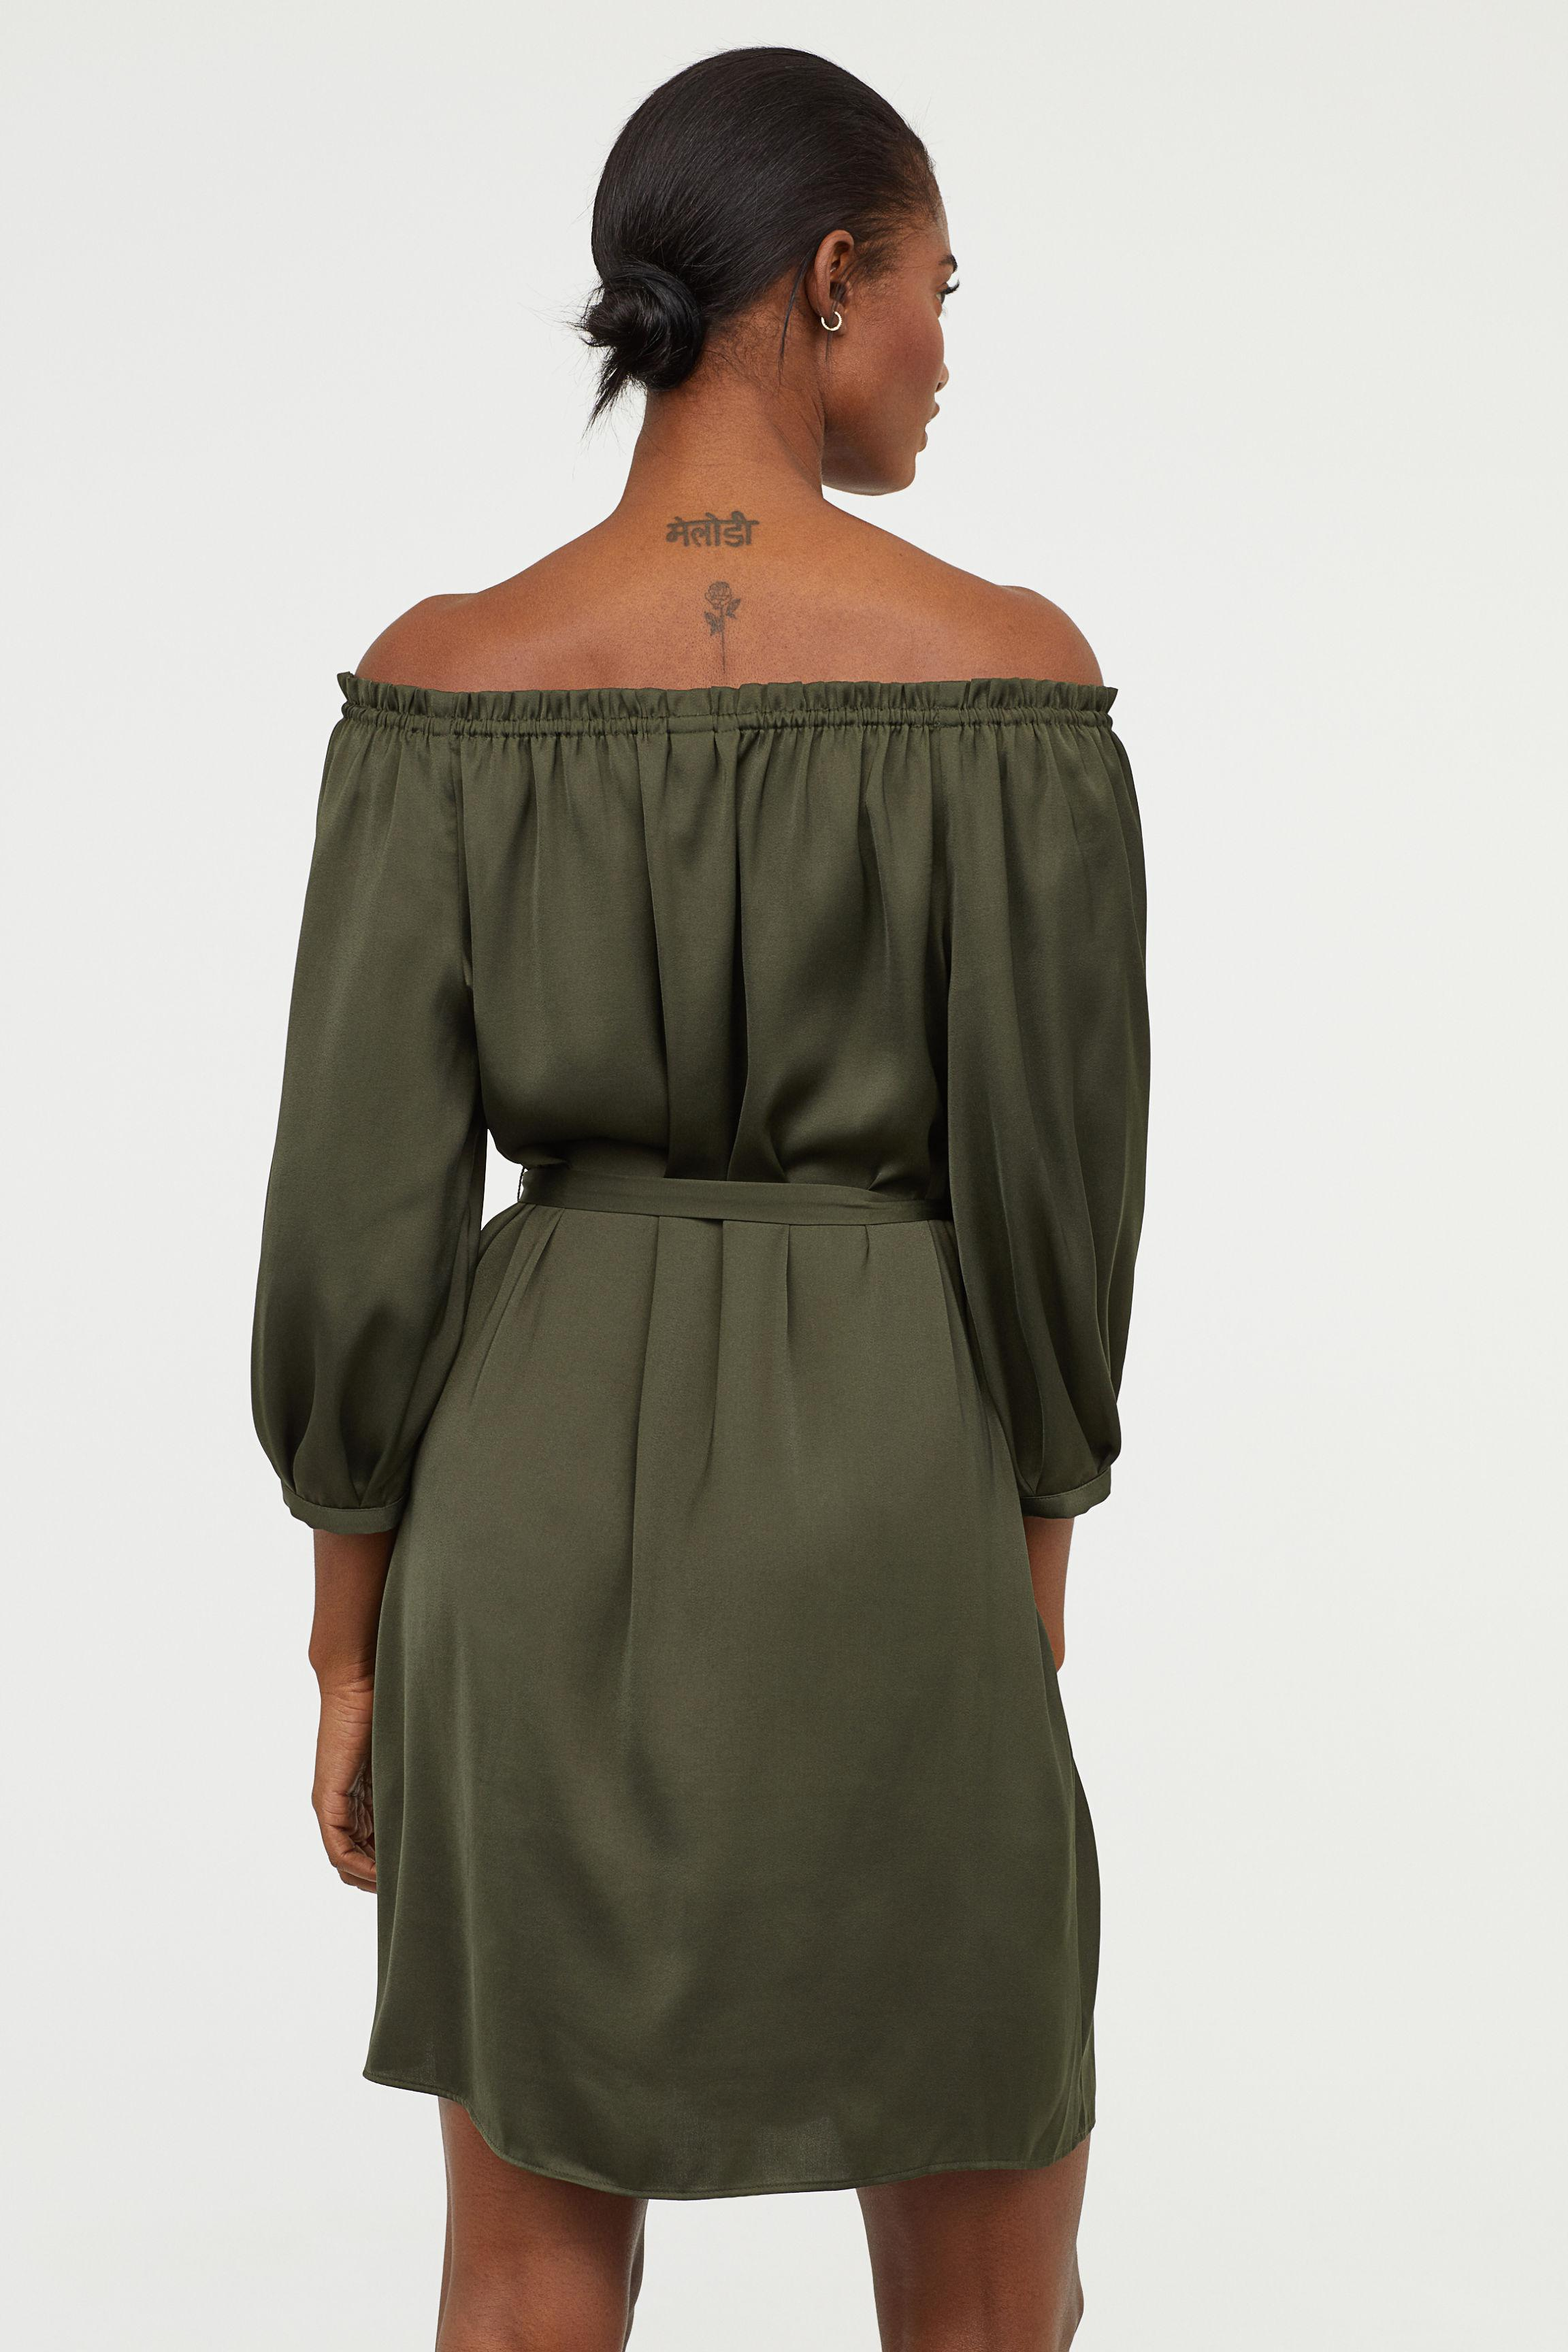 7280080d1a62 ... HM - Green Off-the-shoulder Dress - Lyst. View fullscreen los angeles  ...